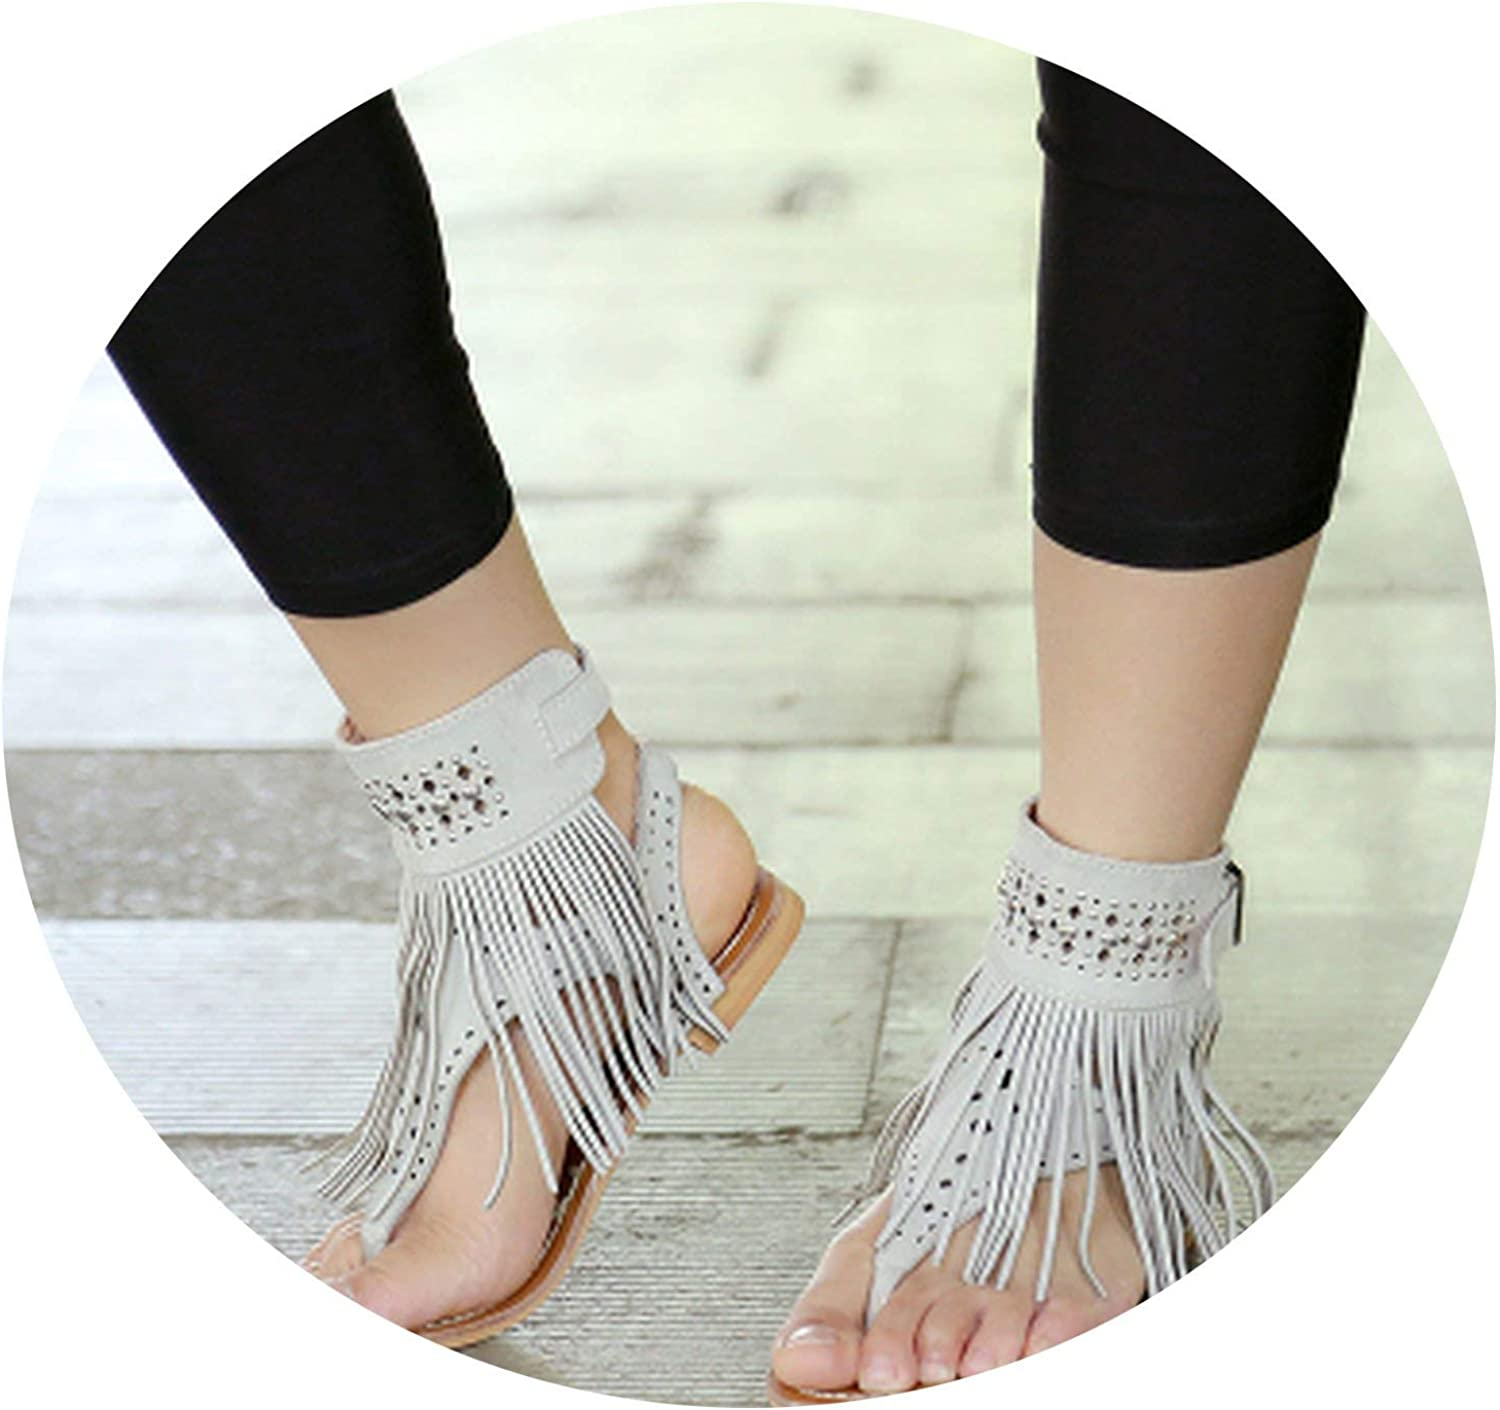 APROUDpink Women Bohemian Sandals Flat Sandals Tassels Casual Summer shoes